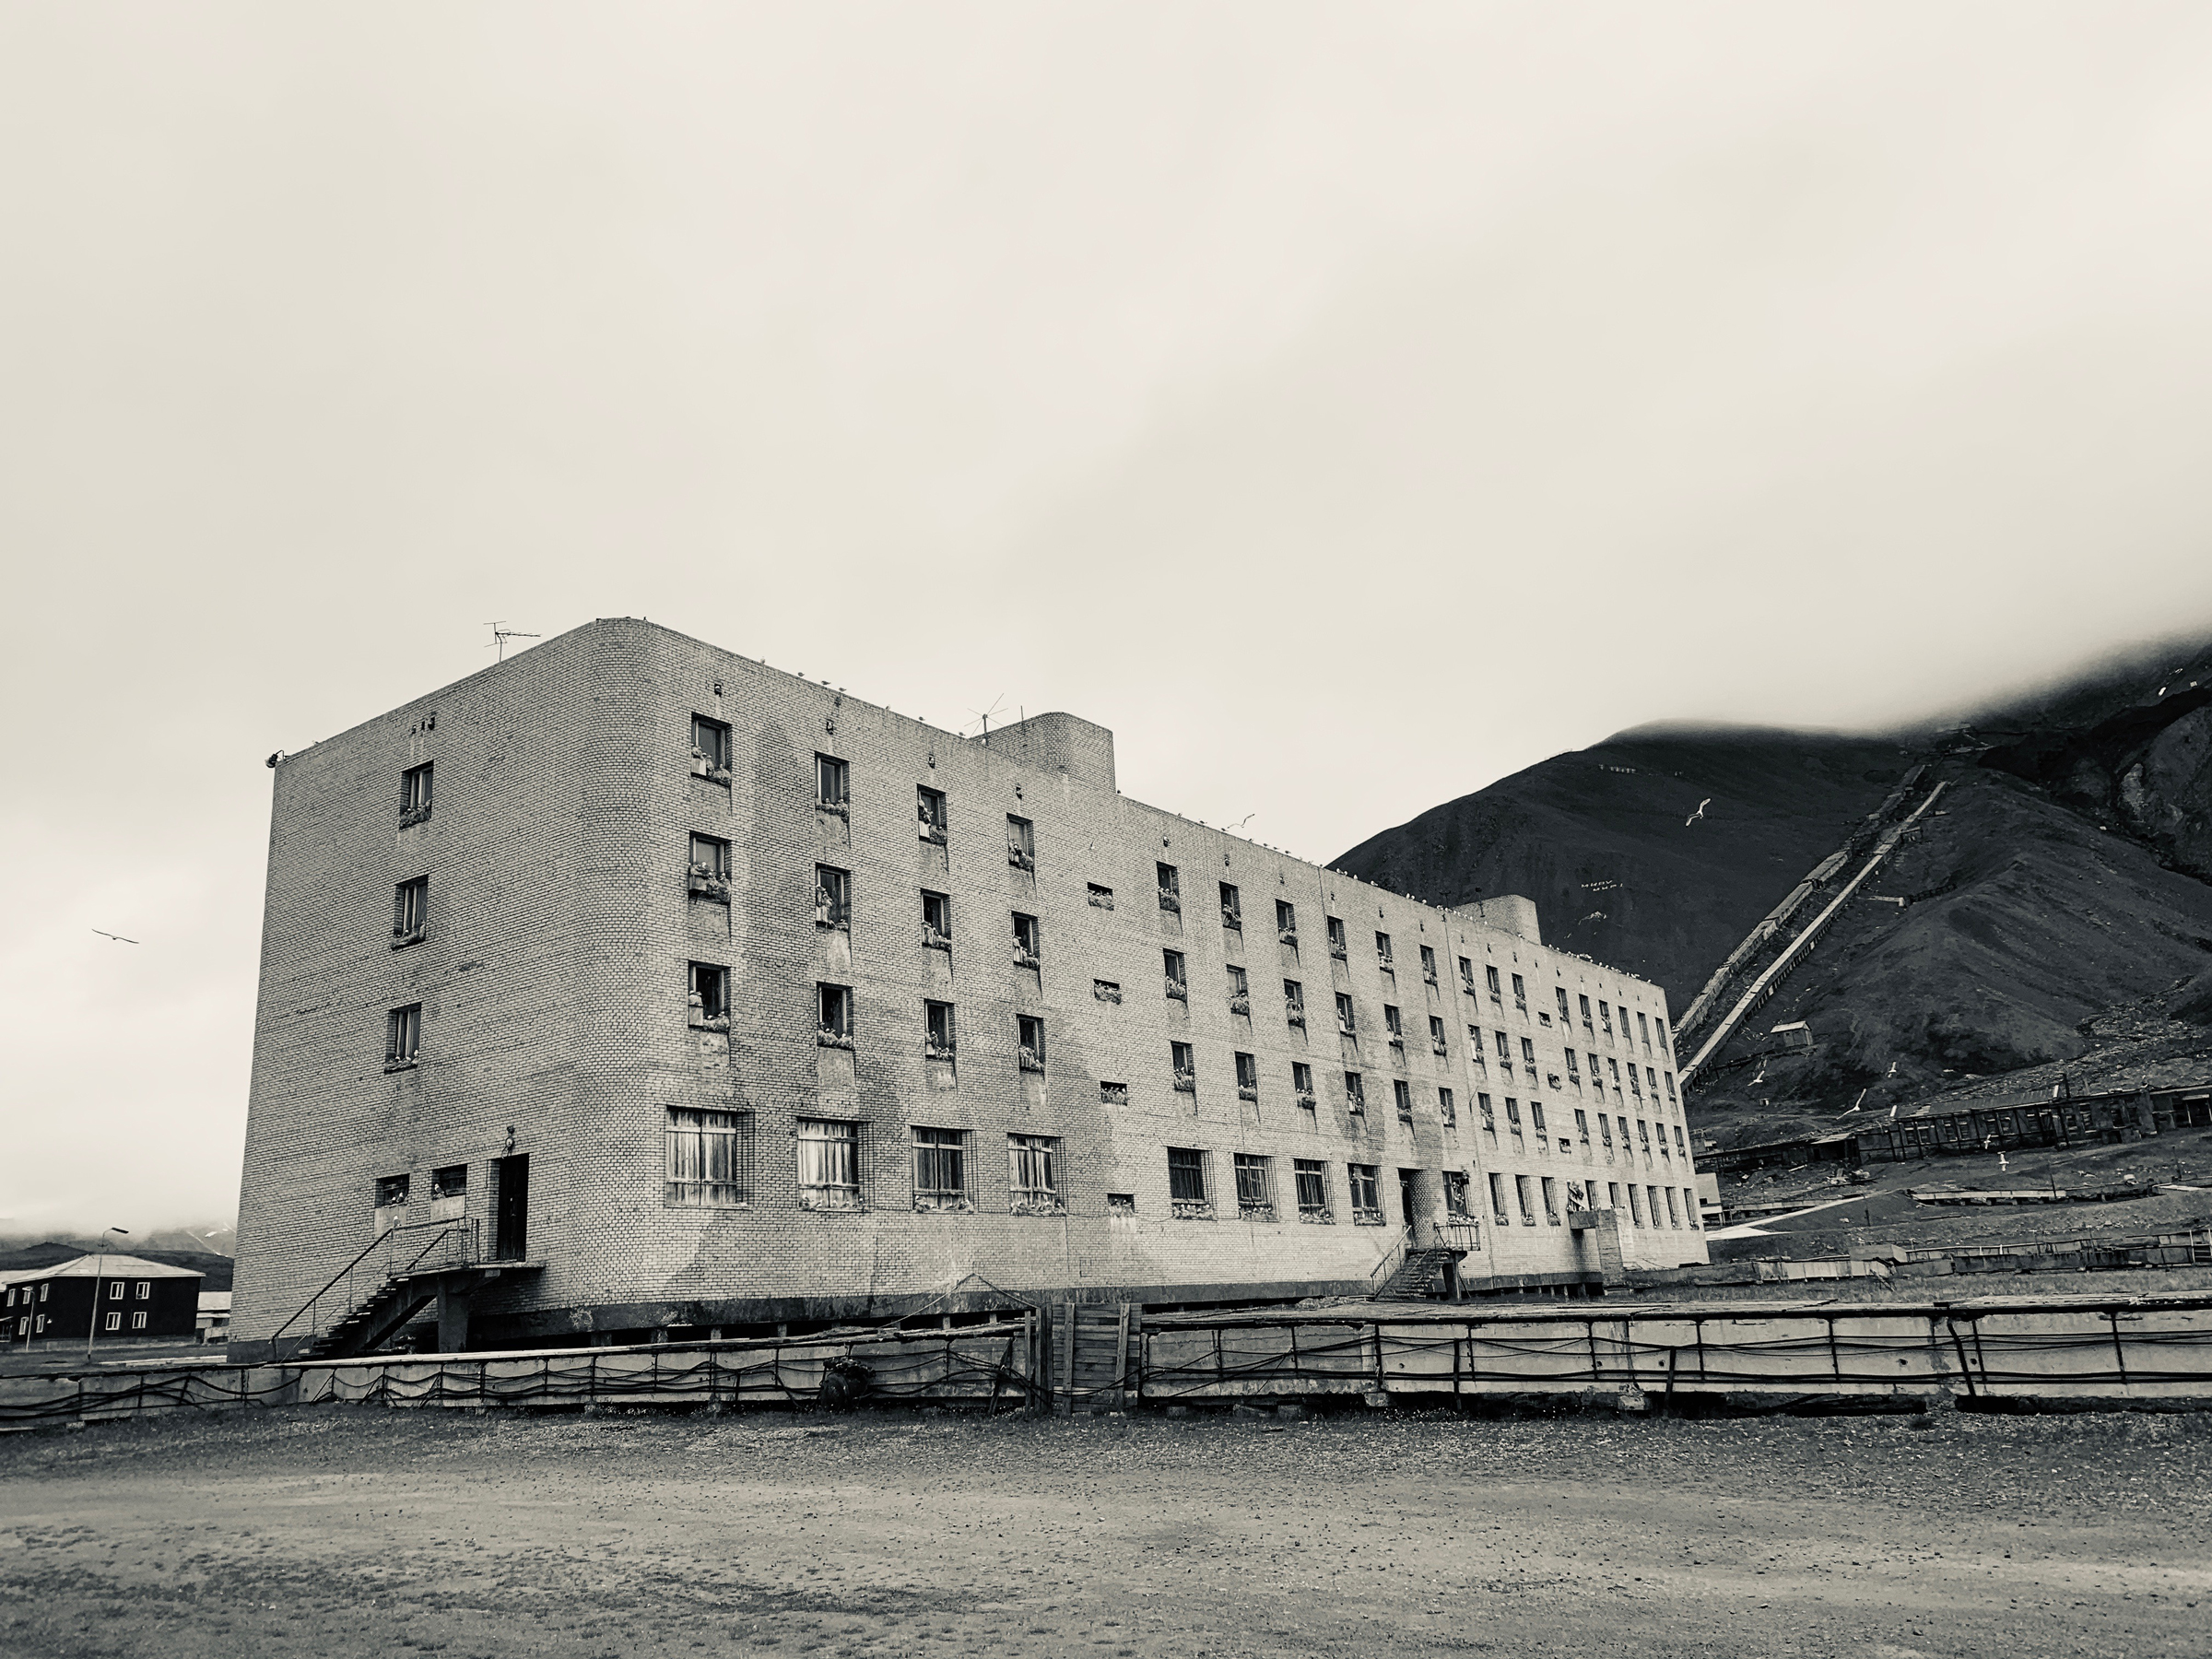 Worker's accommodation building, Pyramiden (Mike Watson).